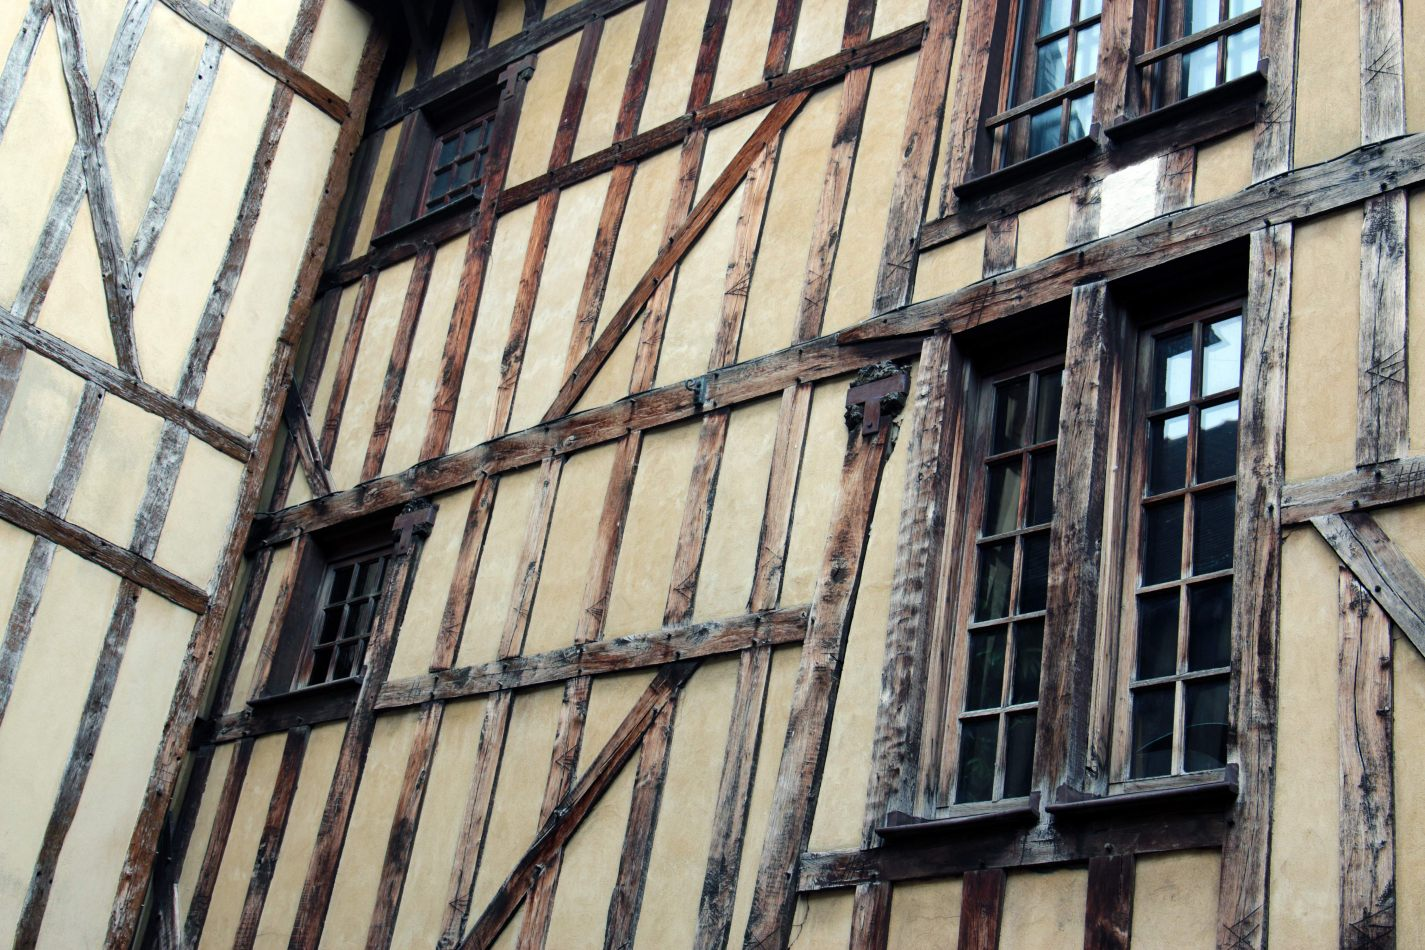 Anthony Ellis Photography: Libertine - The Timbers of Troyes